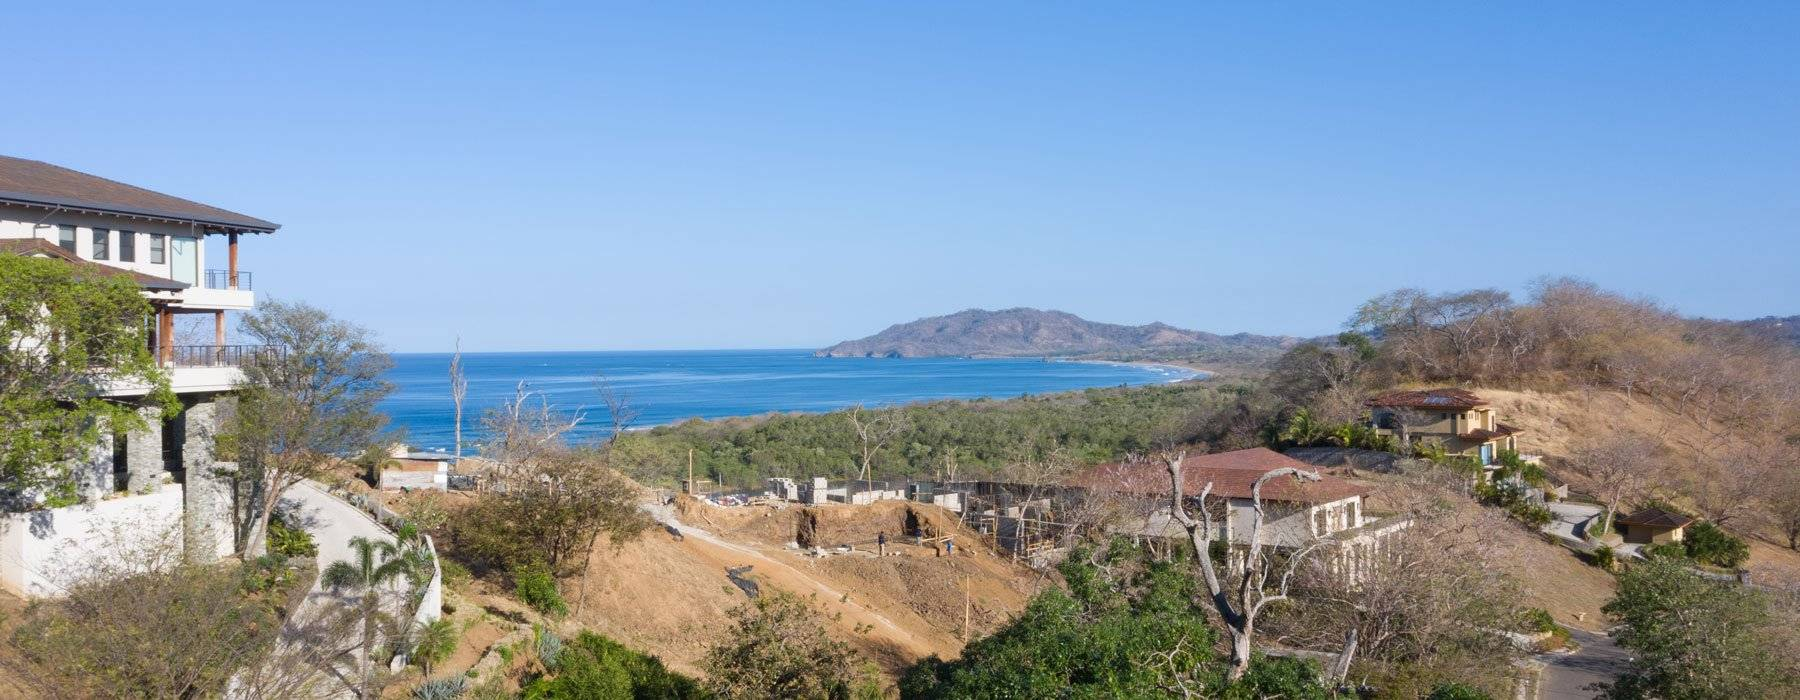 Lot No: 1-E- Perfect mountainside homesite with exceptional ocean views!